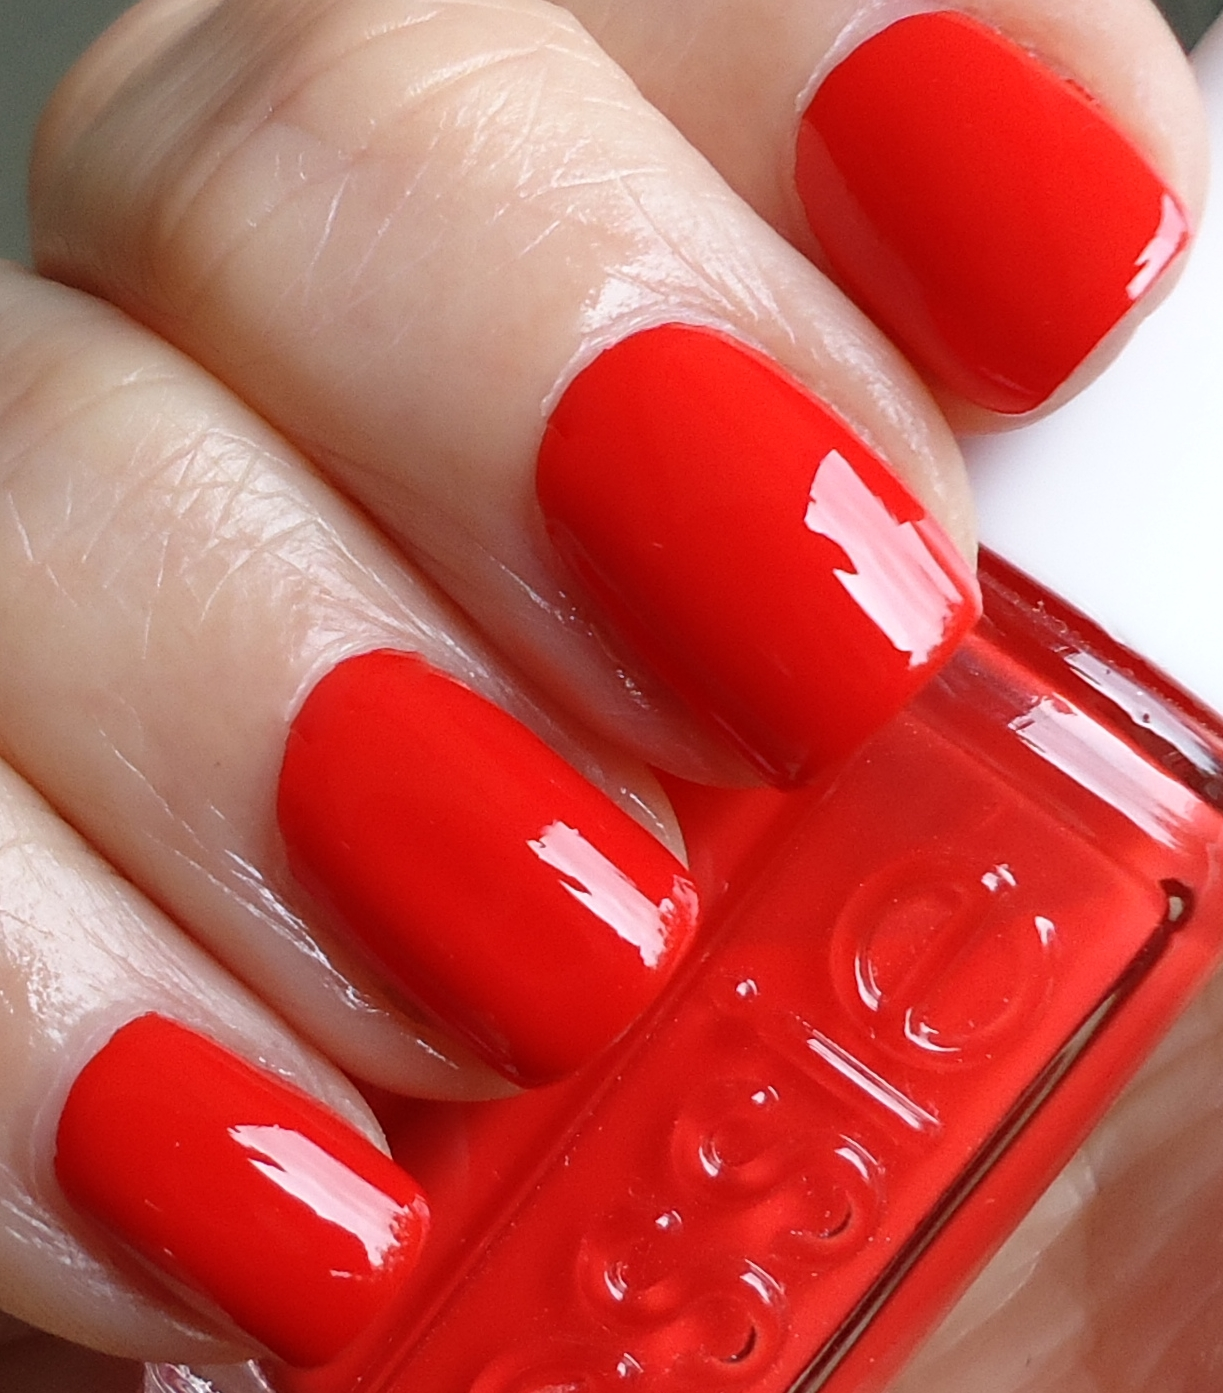 Making up 4 my age: A classic Essie red: Fifth Avenue